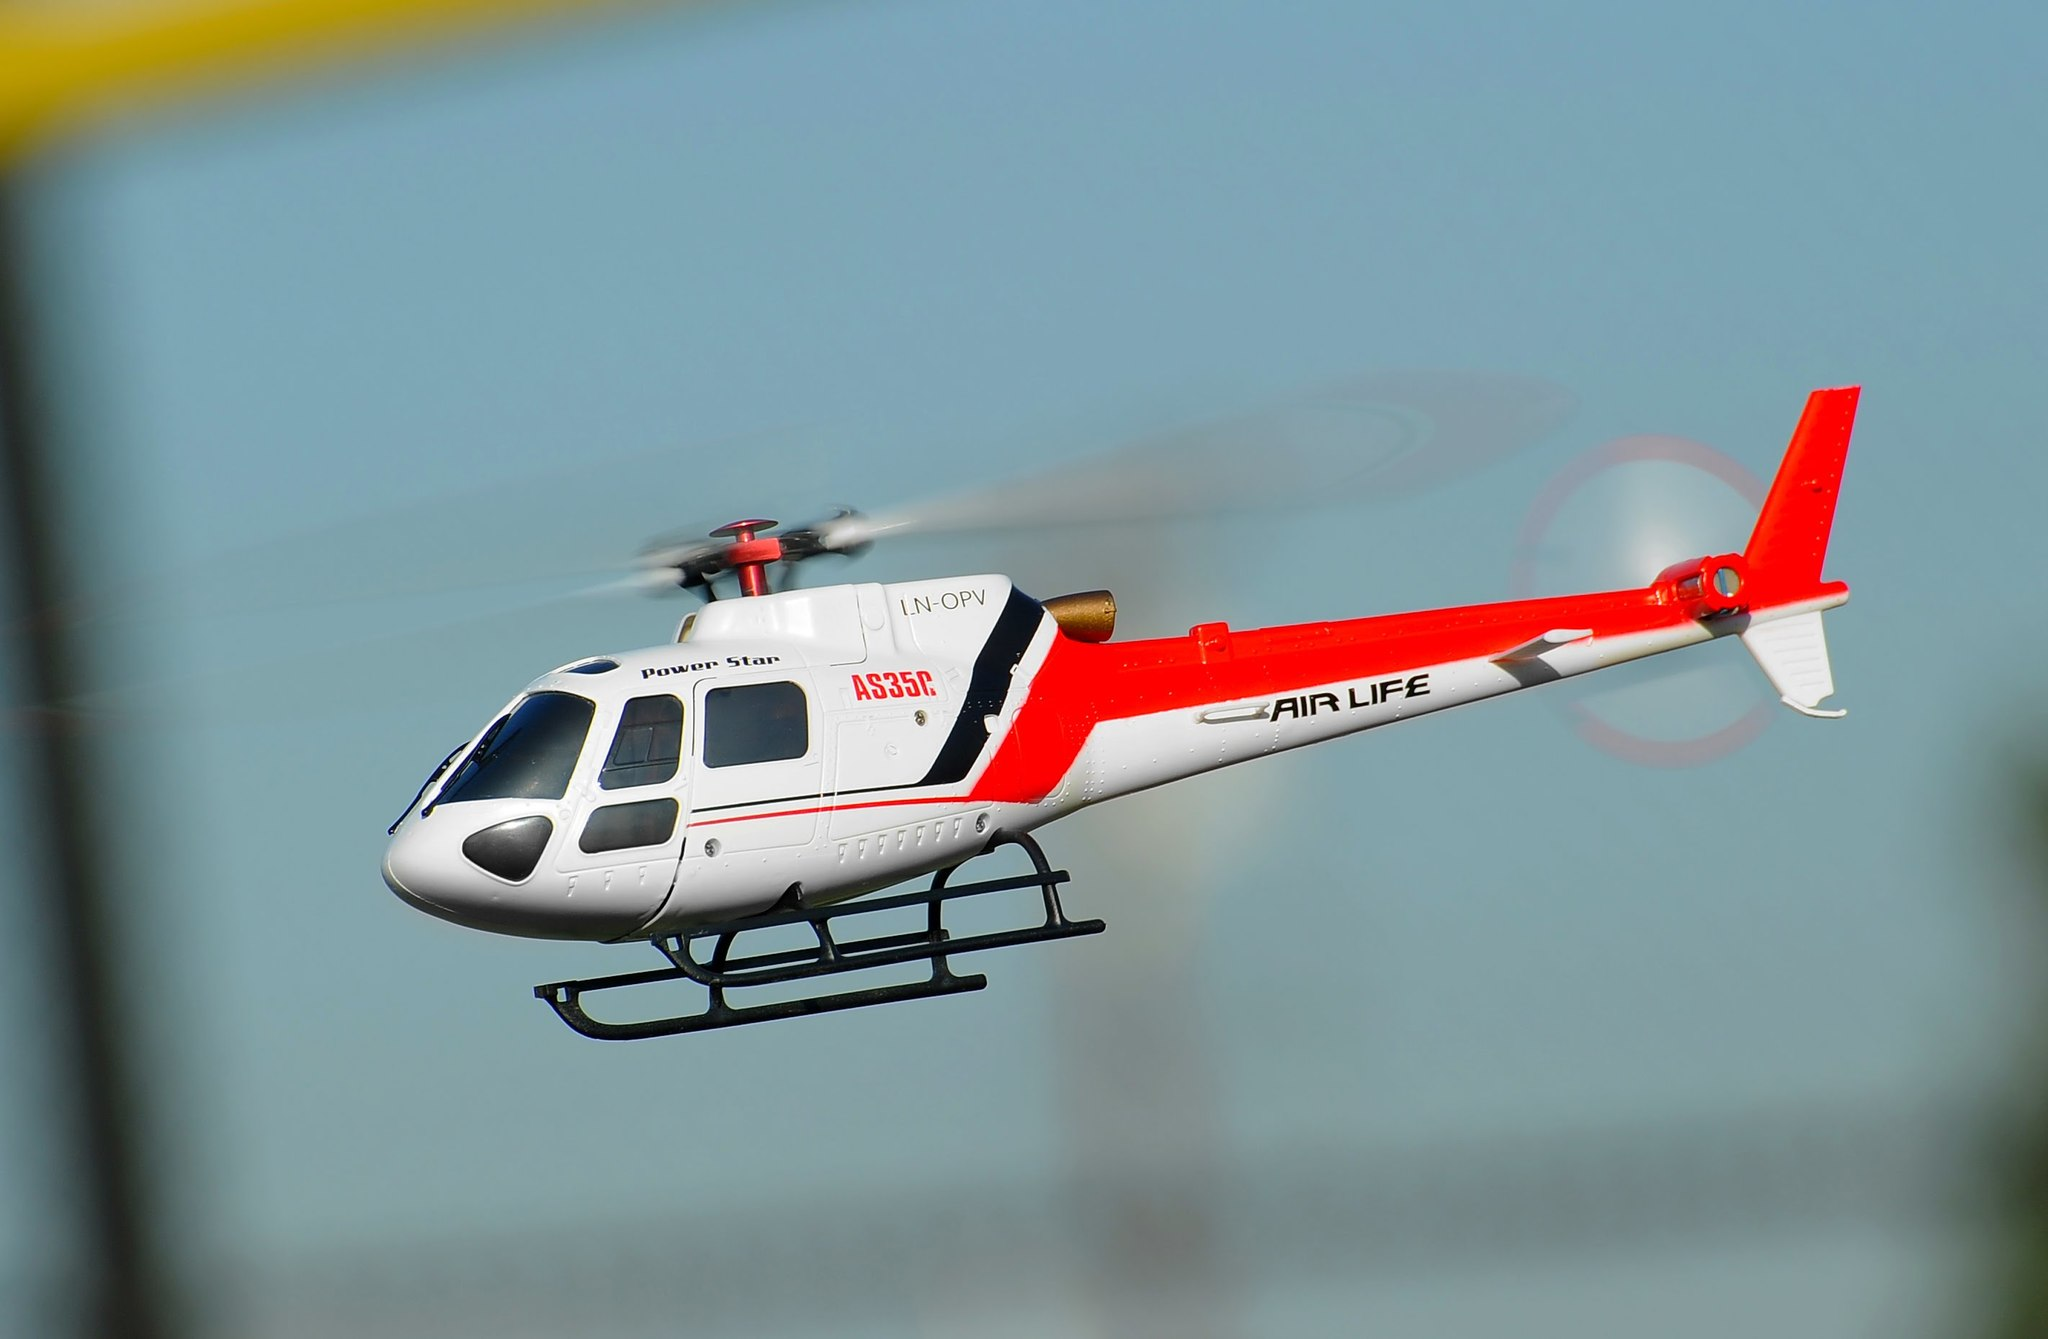 HobbyMall WL V931 2.4G 6CH Brushless AS350 Scale RC Heli